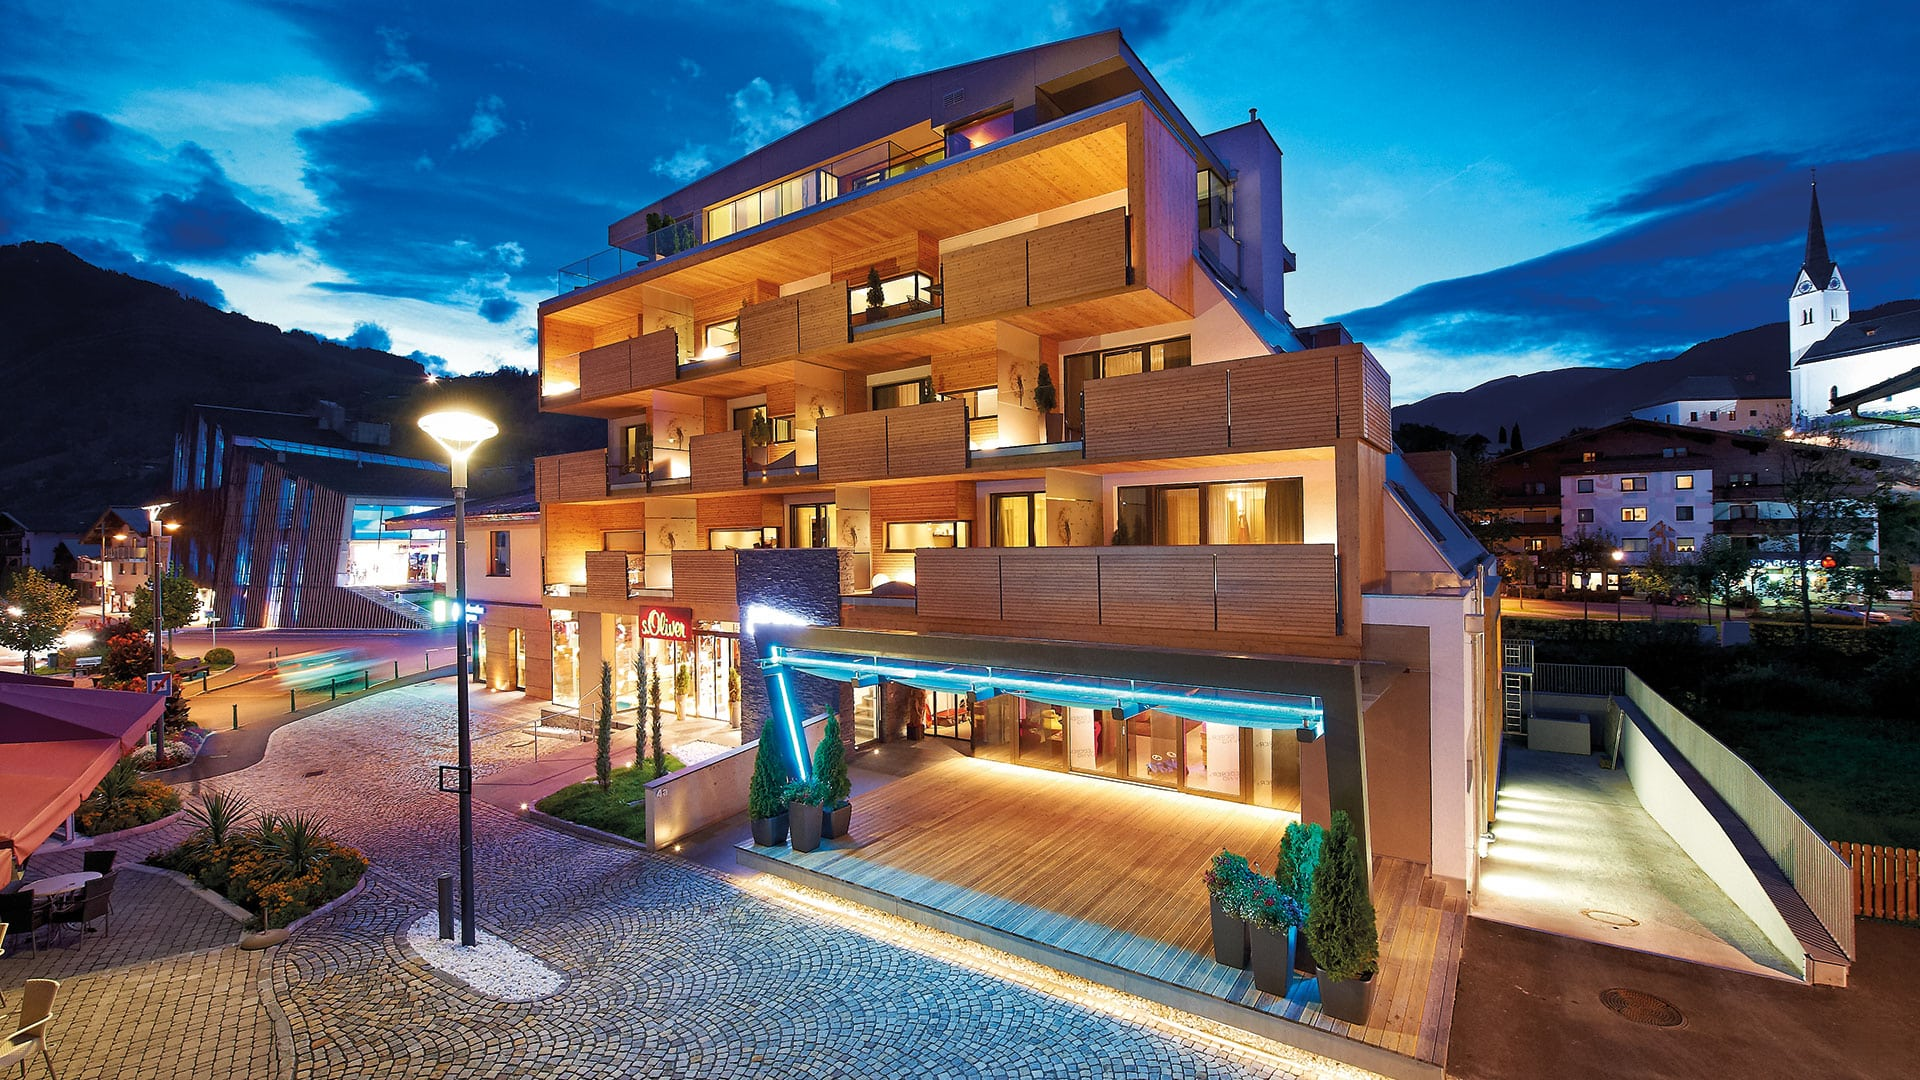 LEDERER'sLIVING TheSmartHotel✰Kaprun.at✰